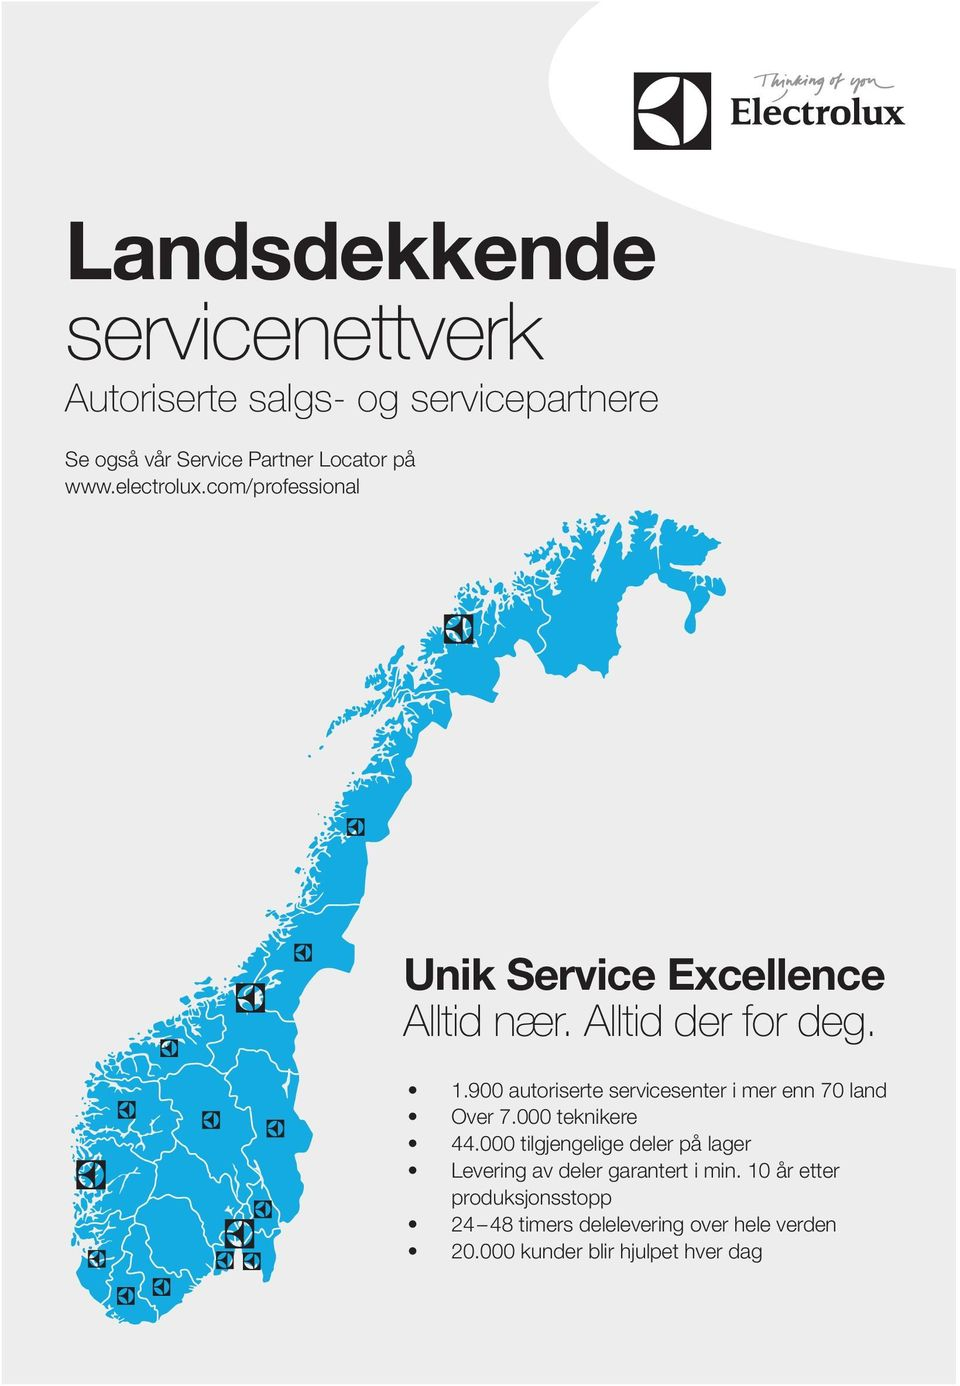 Electrolux service norge